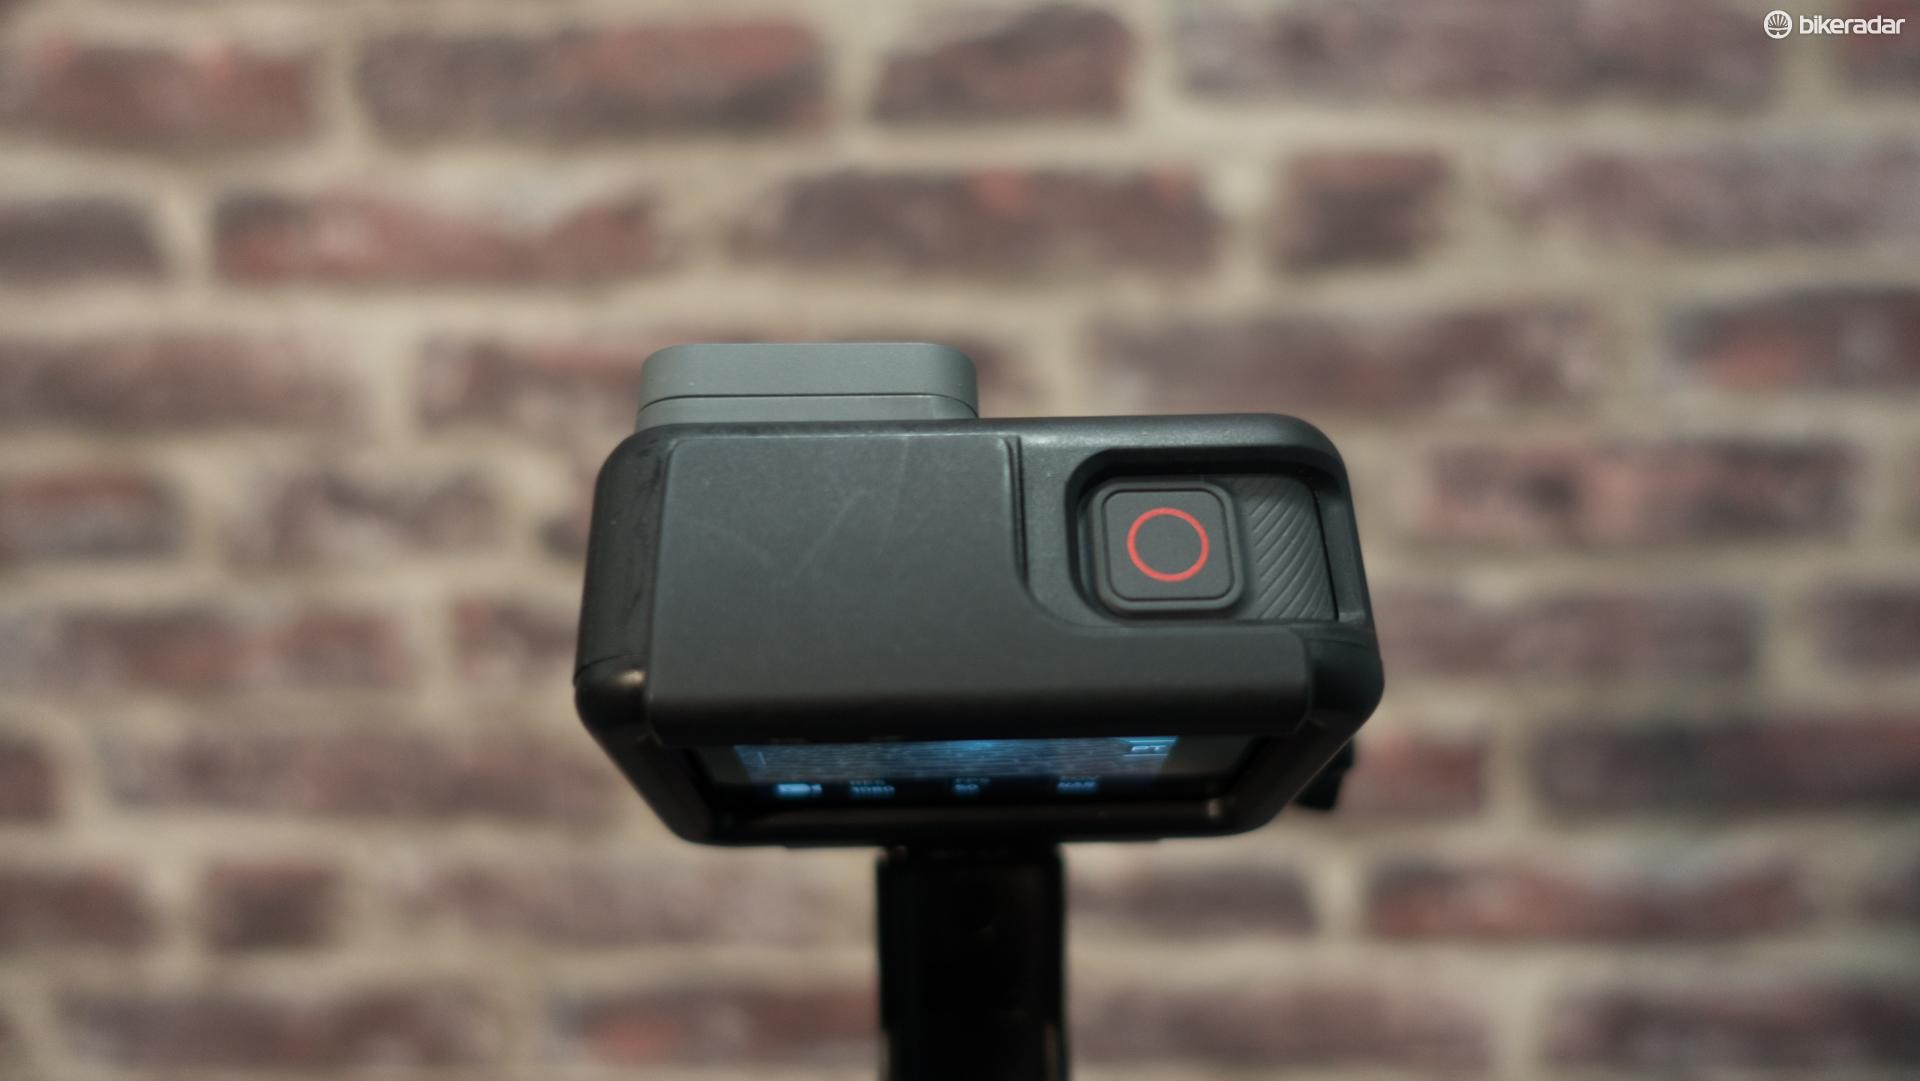 GoPro's Hero 5 Black has a simple on/off/record button on the top